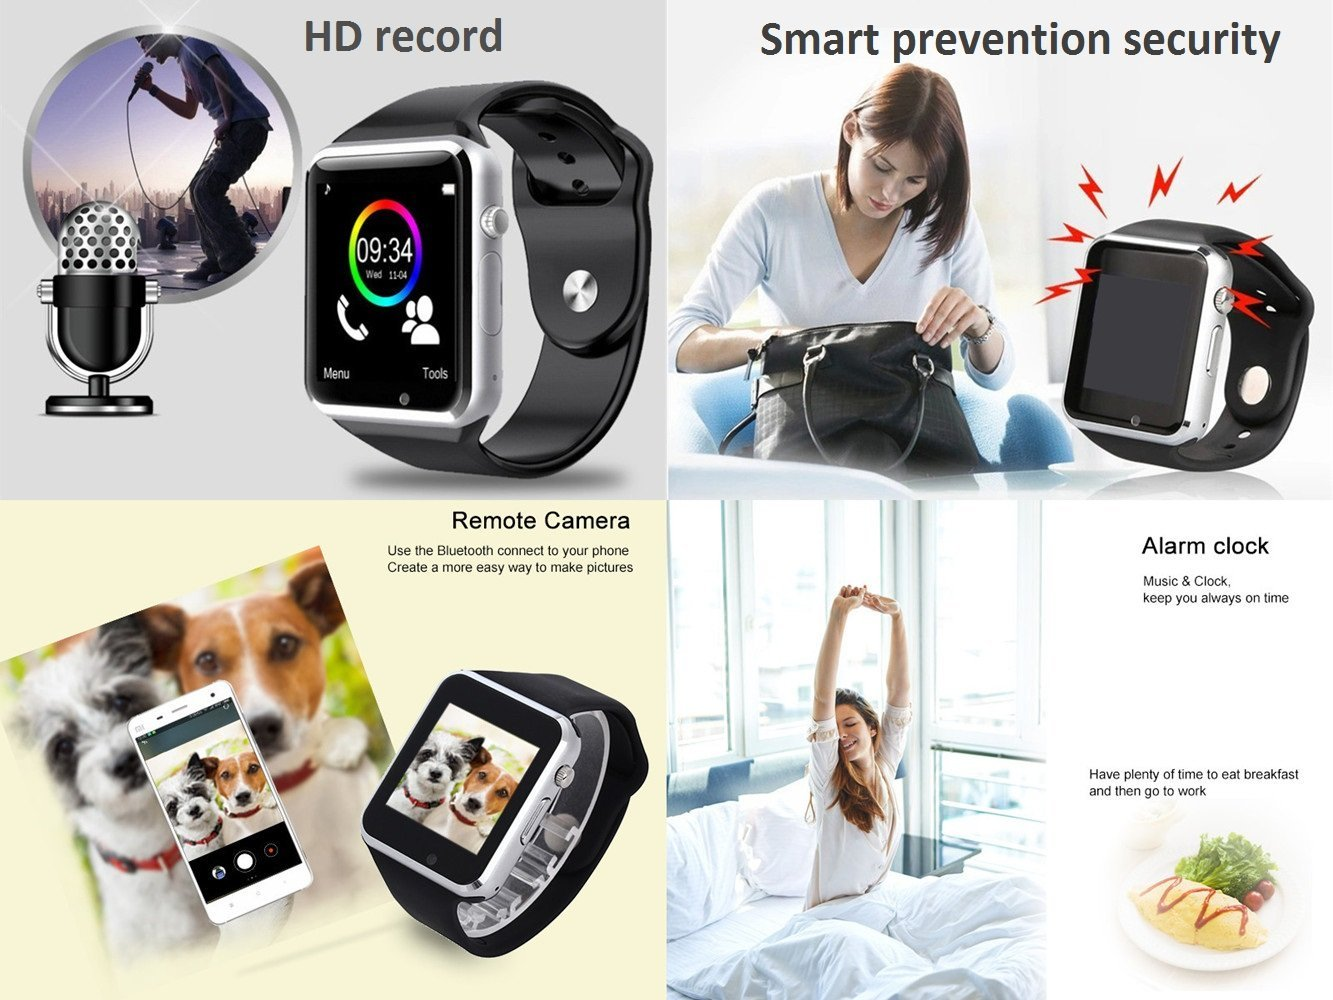 321OU Smart Watch Fitness Tracker Bluetooth Smart Watch Smartwatch Phone Fitness Tracker SIM SD Card Slot Camera Pedometer iPhone iOS Samsung LG Android Men Women Kids (New Black) by 321OU (Image #4)